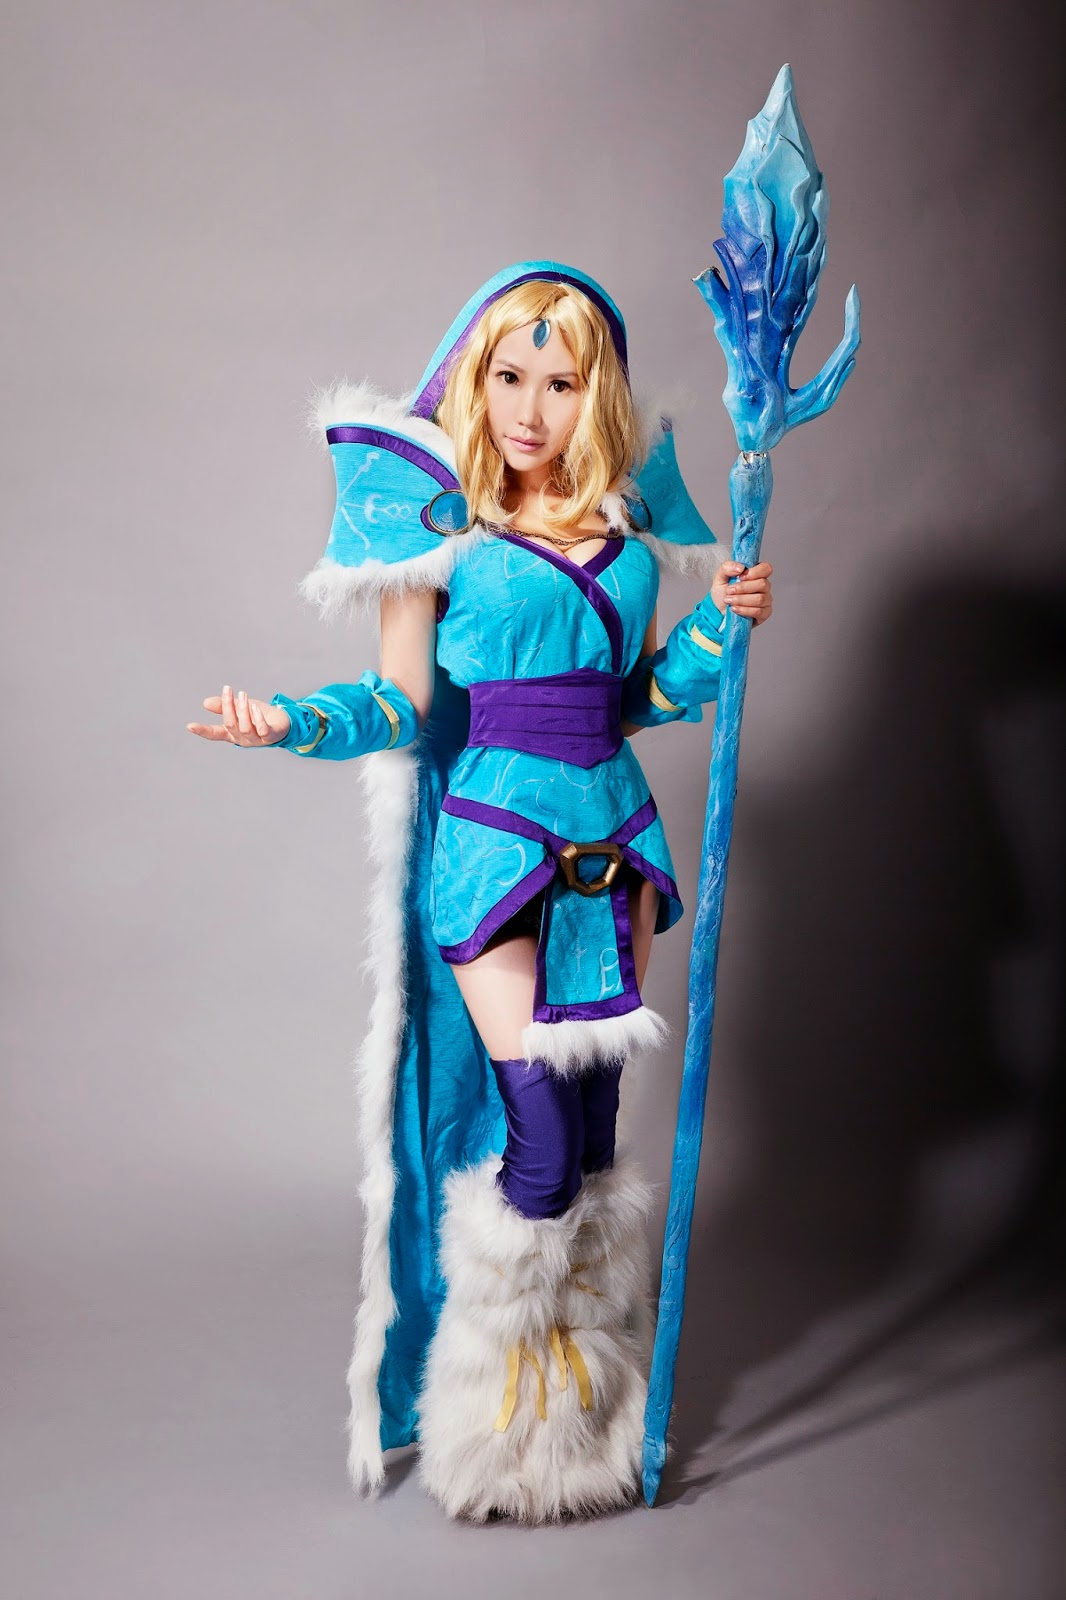 Sexy Crystal Maiden Dota 2 Cosplay